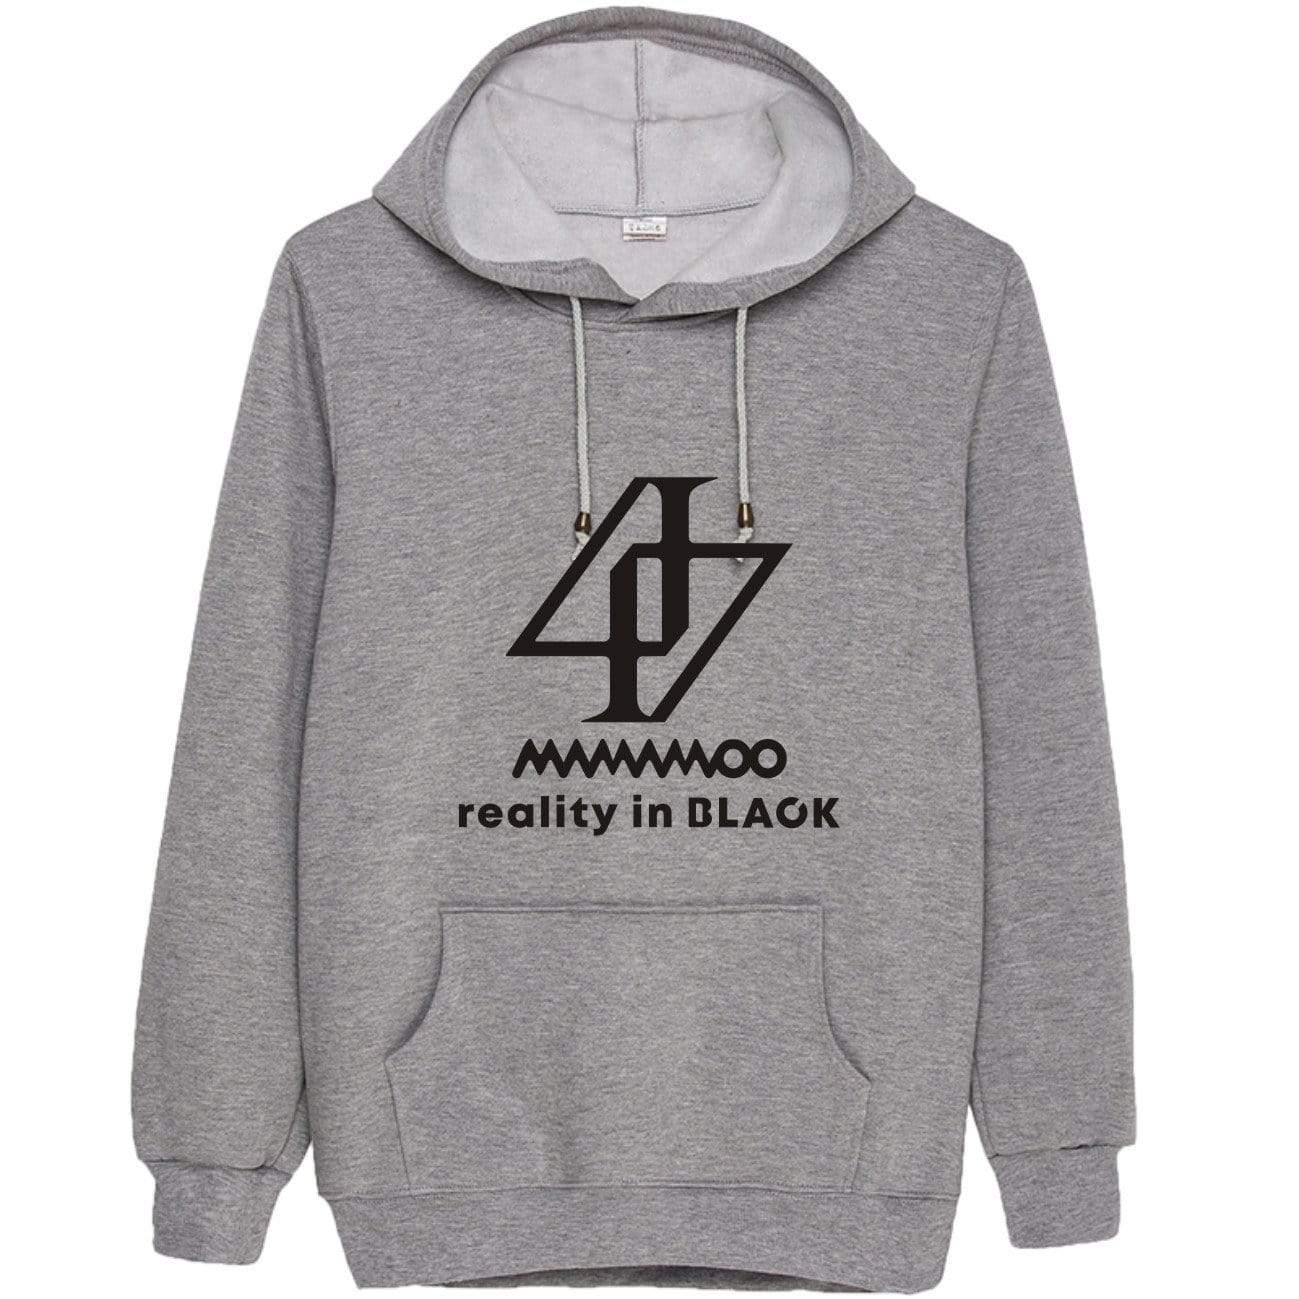 MAMAMOO reality in BLACK Hoodie (白色-加绒 S)